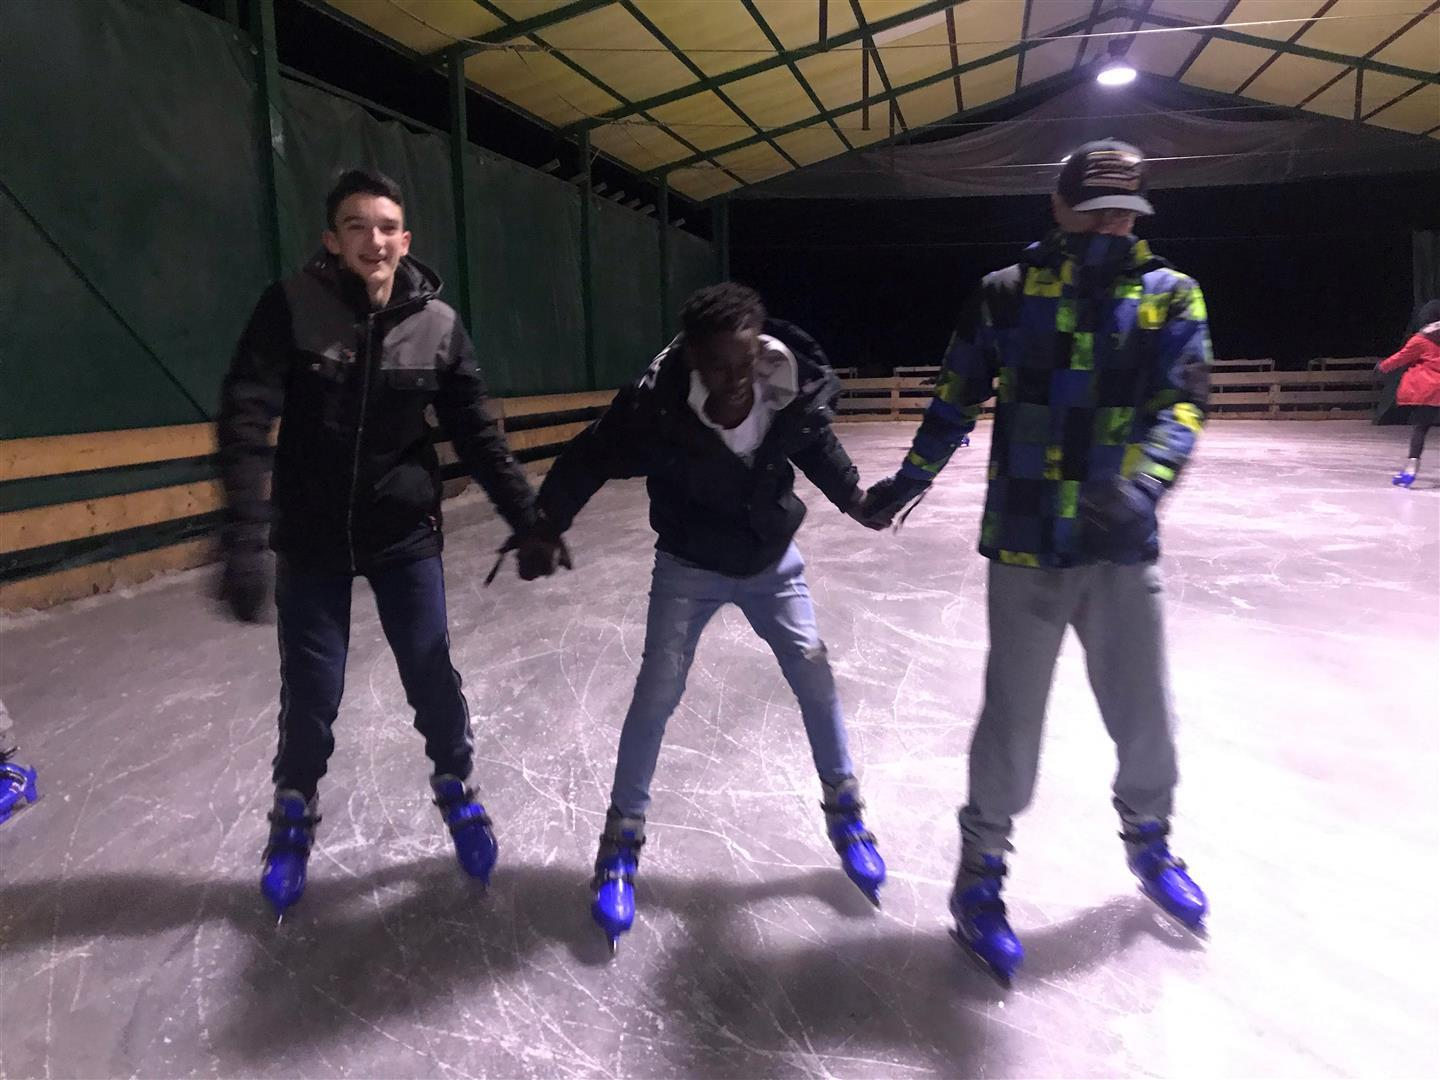 Lucas-Shaun-and-Archie-from-Yr-10-learning-Ice-skating